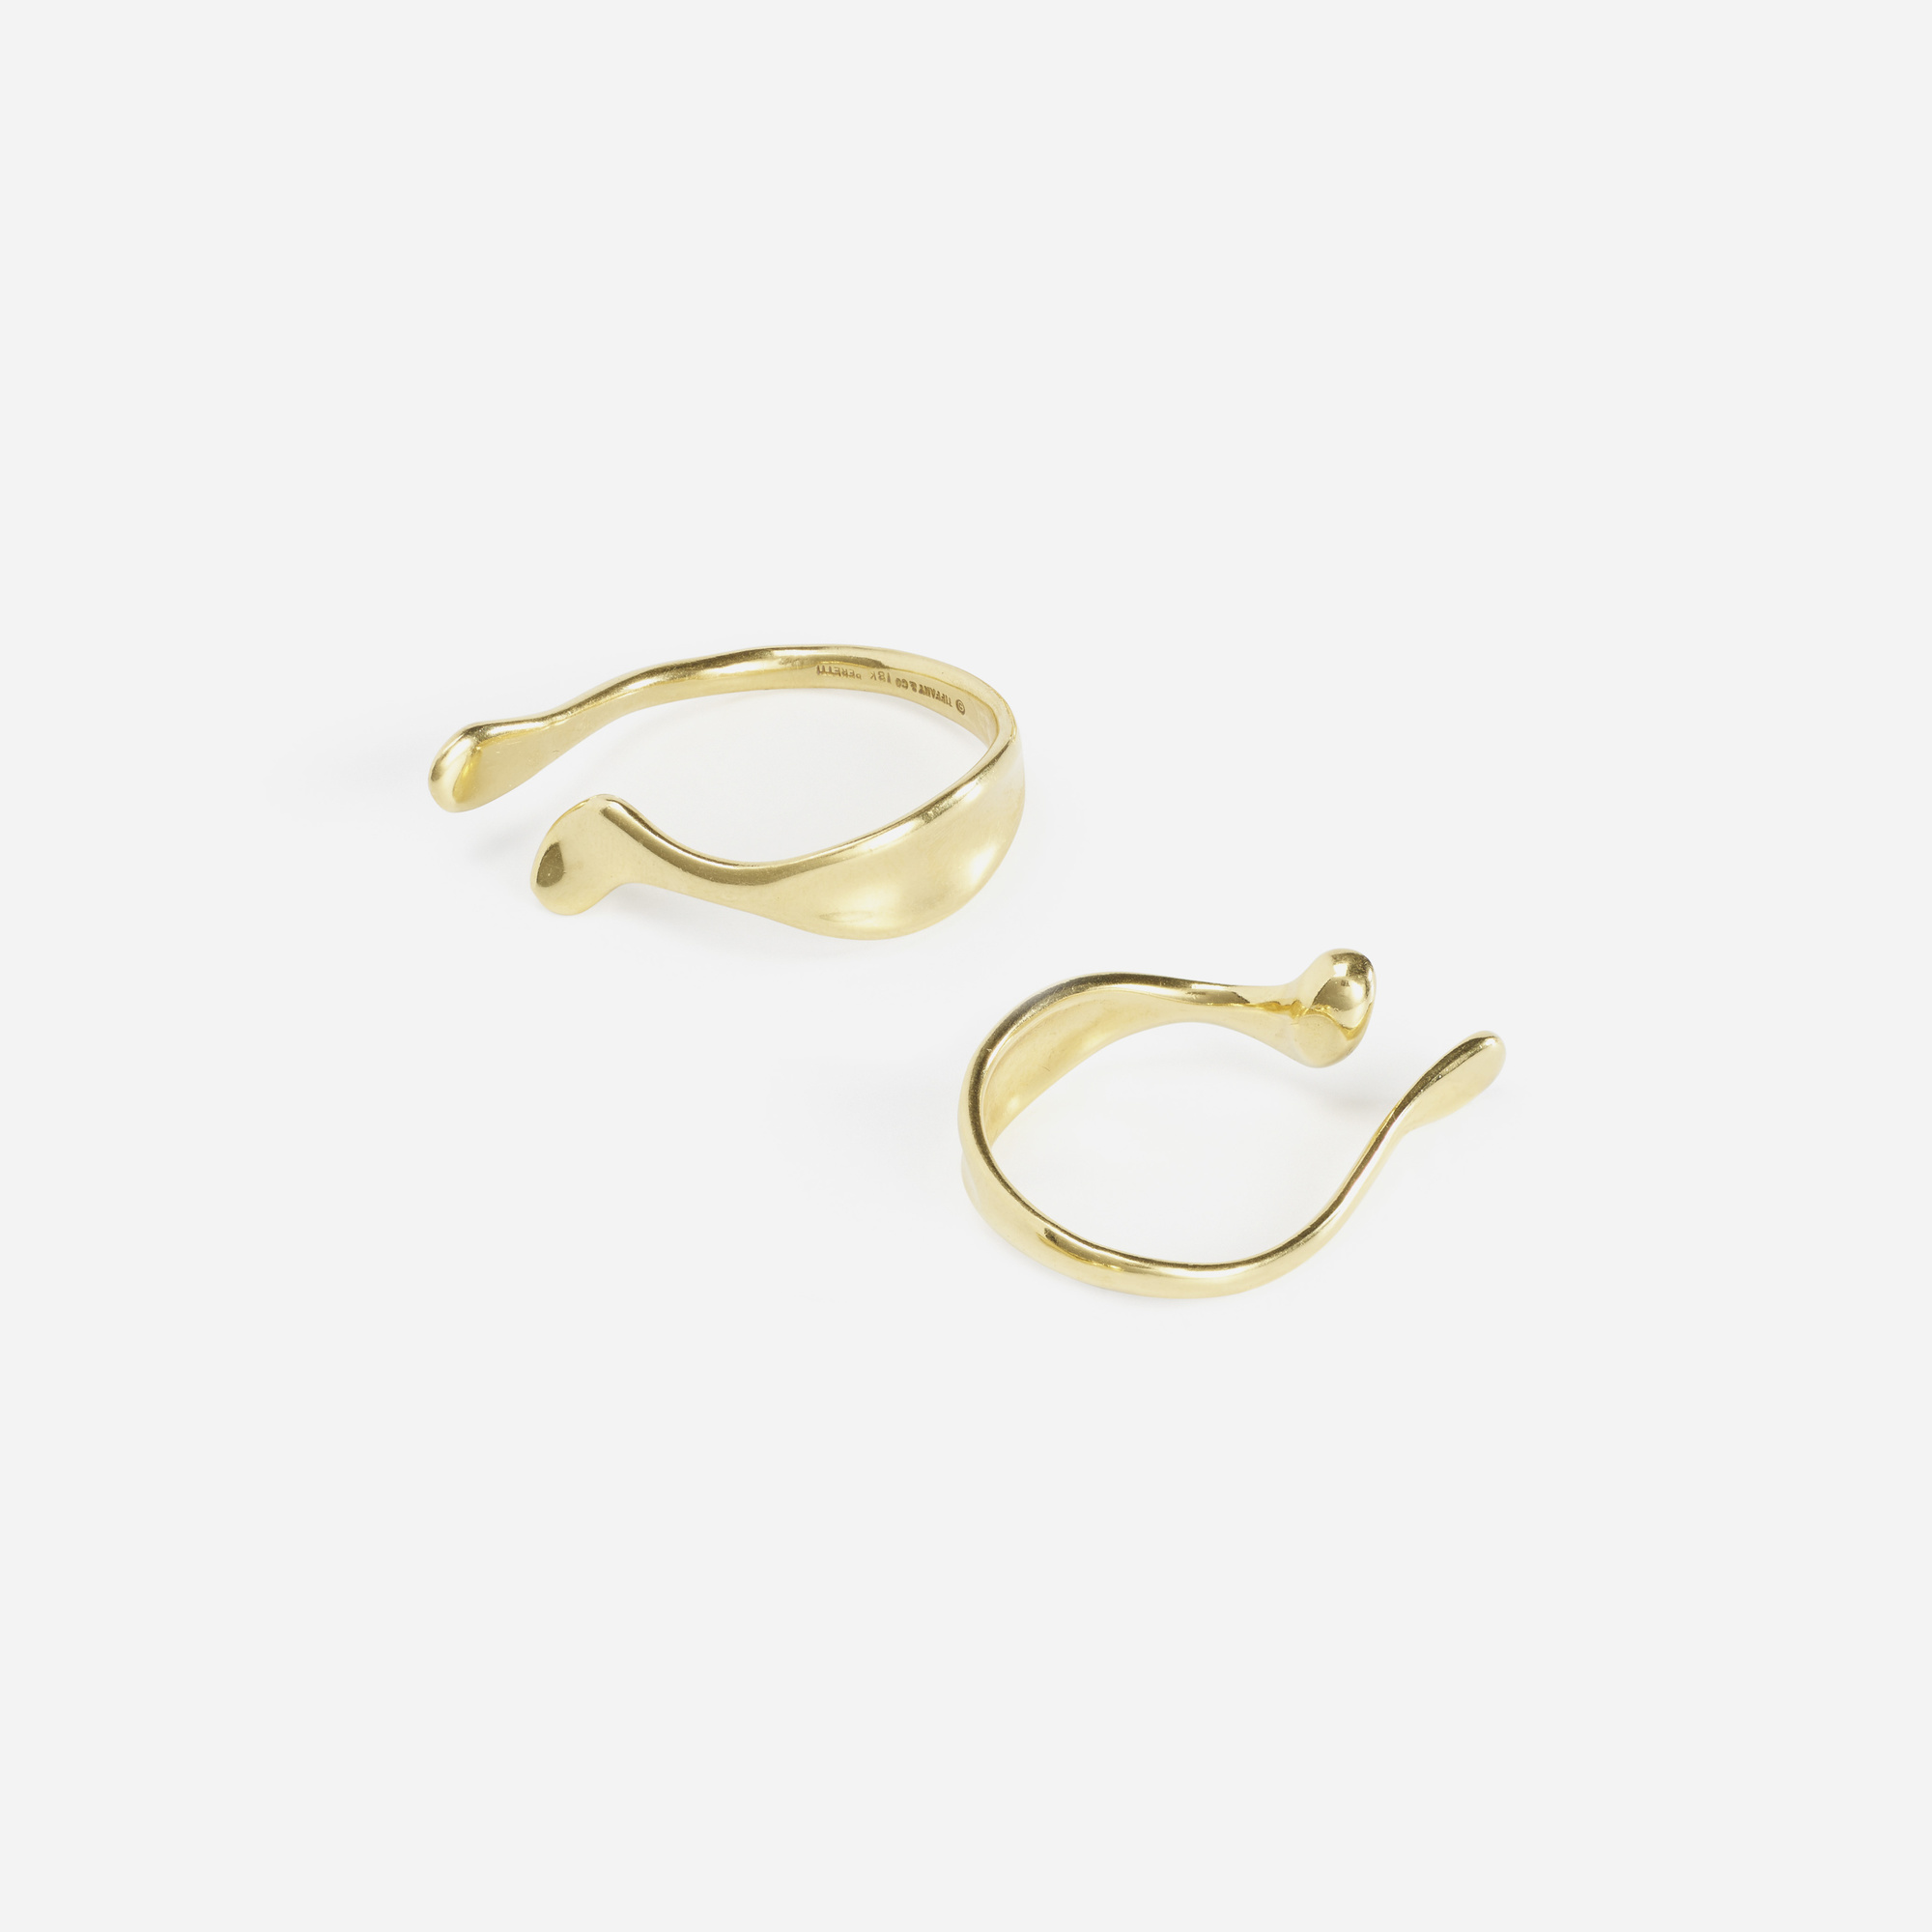 123: Elsa Peretti for Tiffany & Co. / A pair of gold ear cuffs (1 of 1)